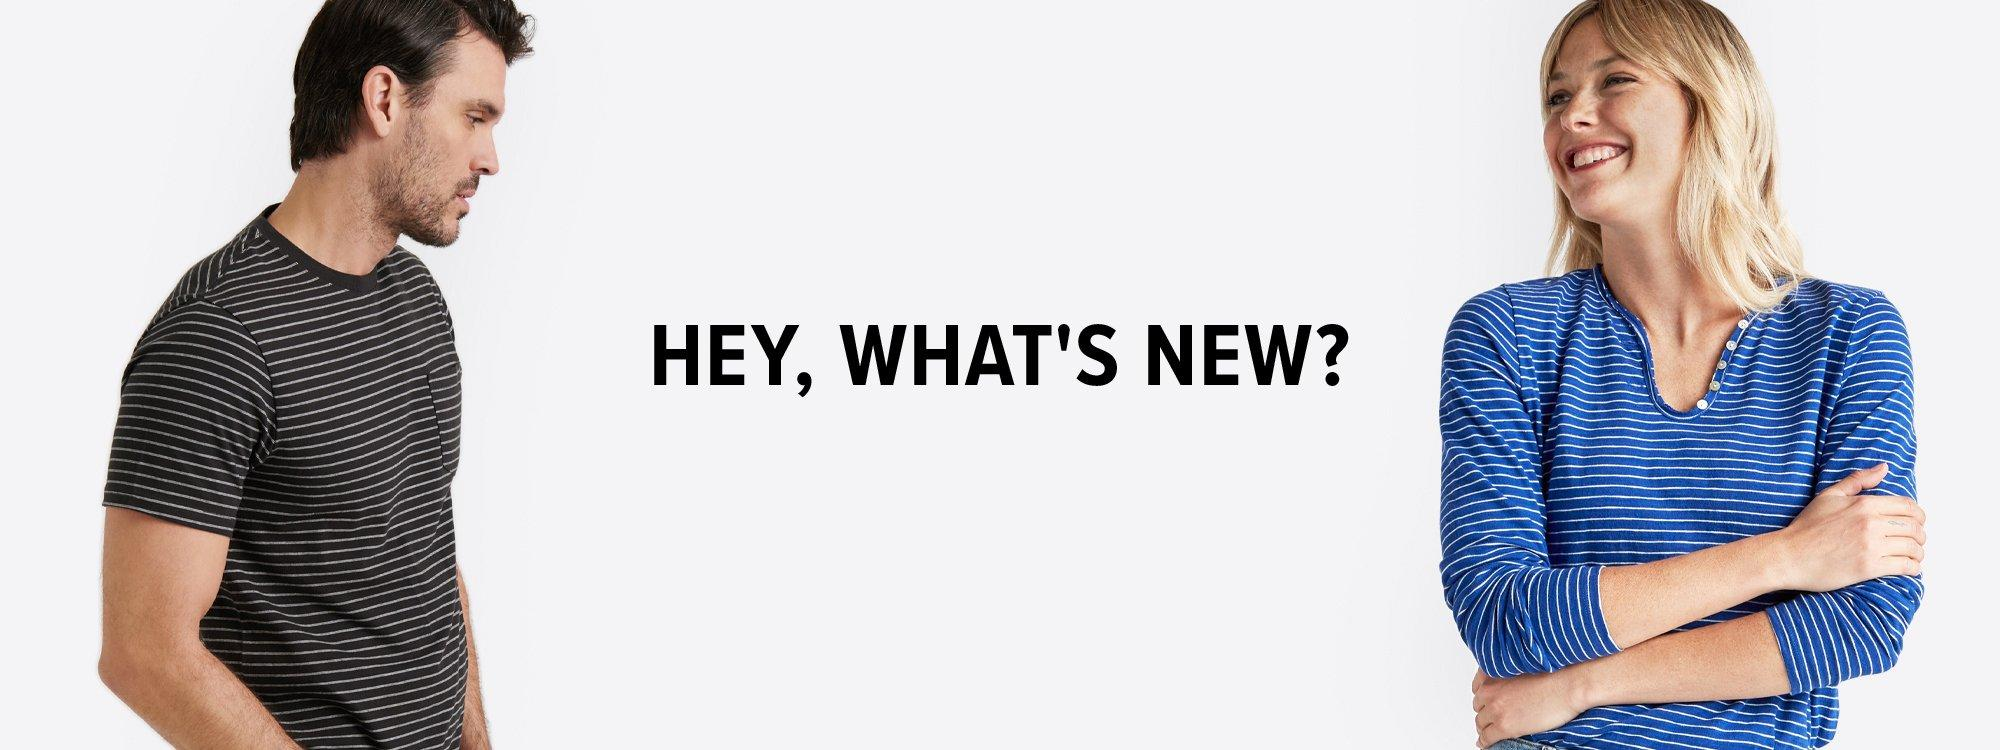 hey, what's new?